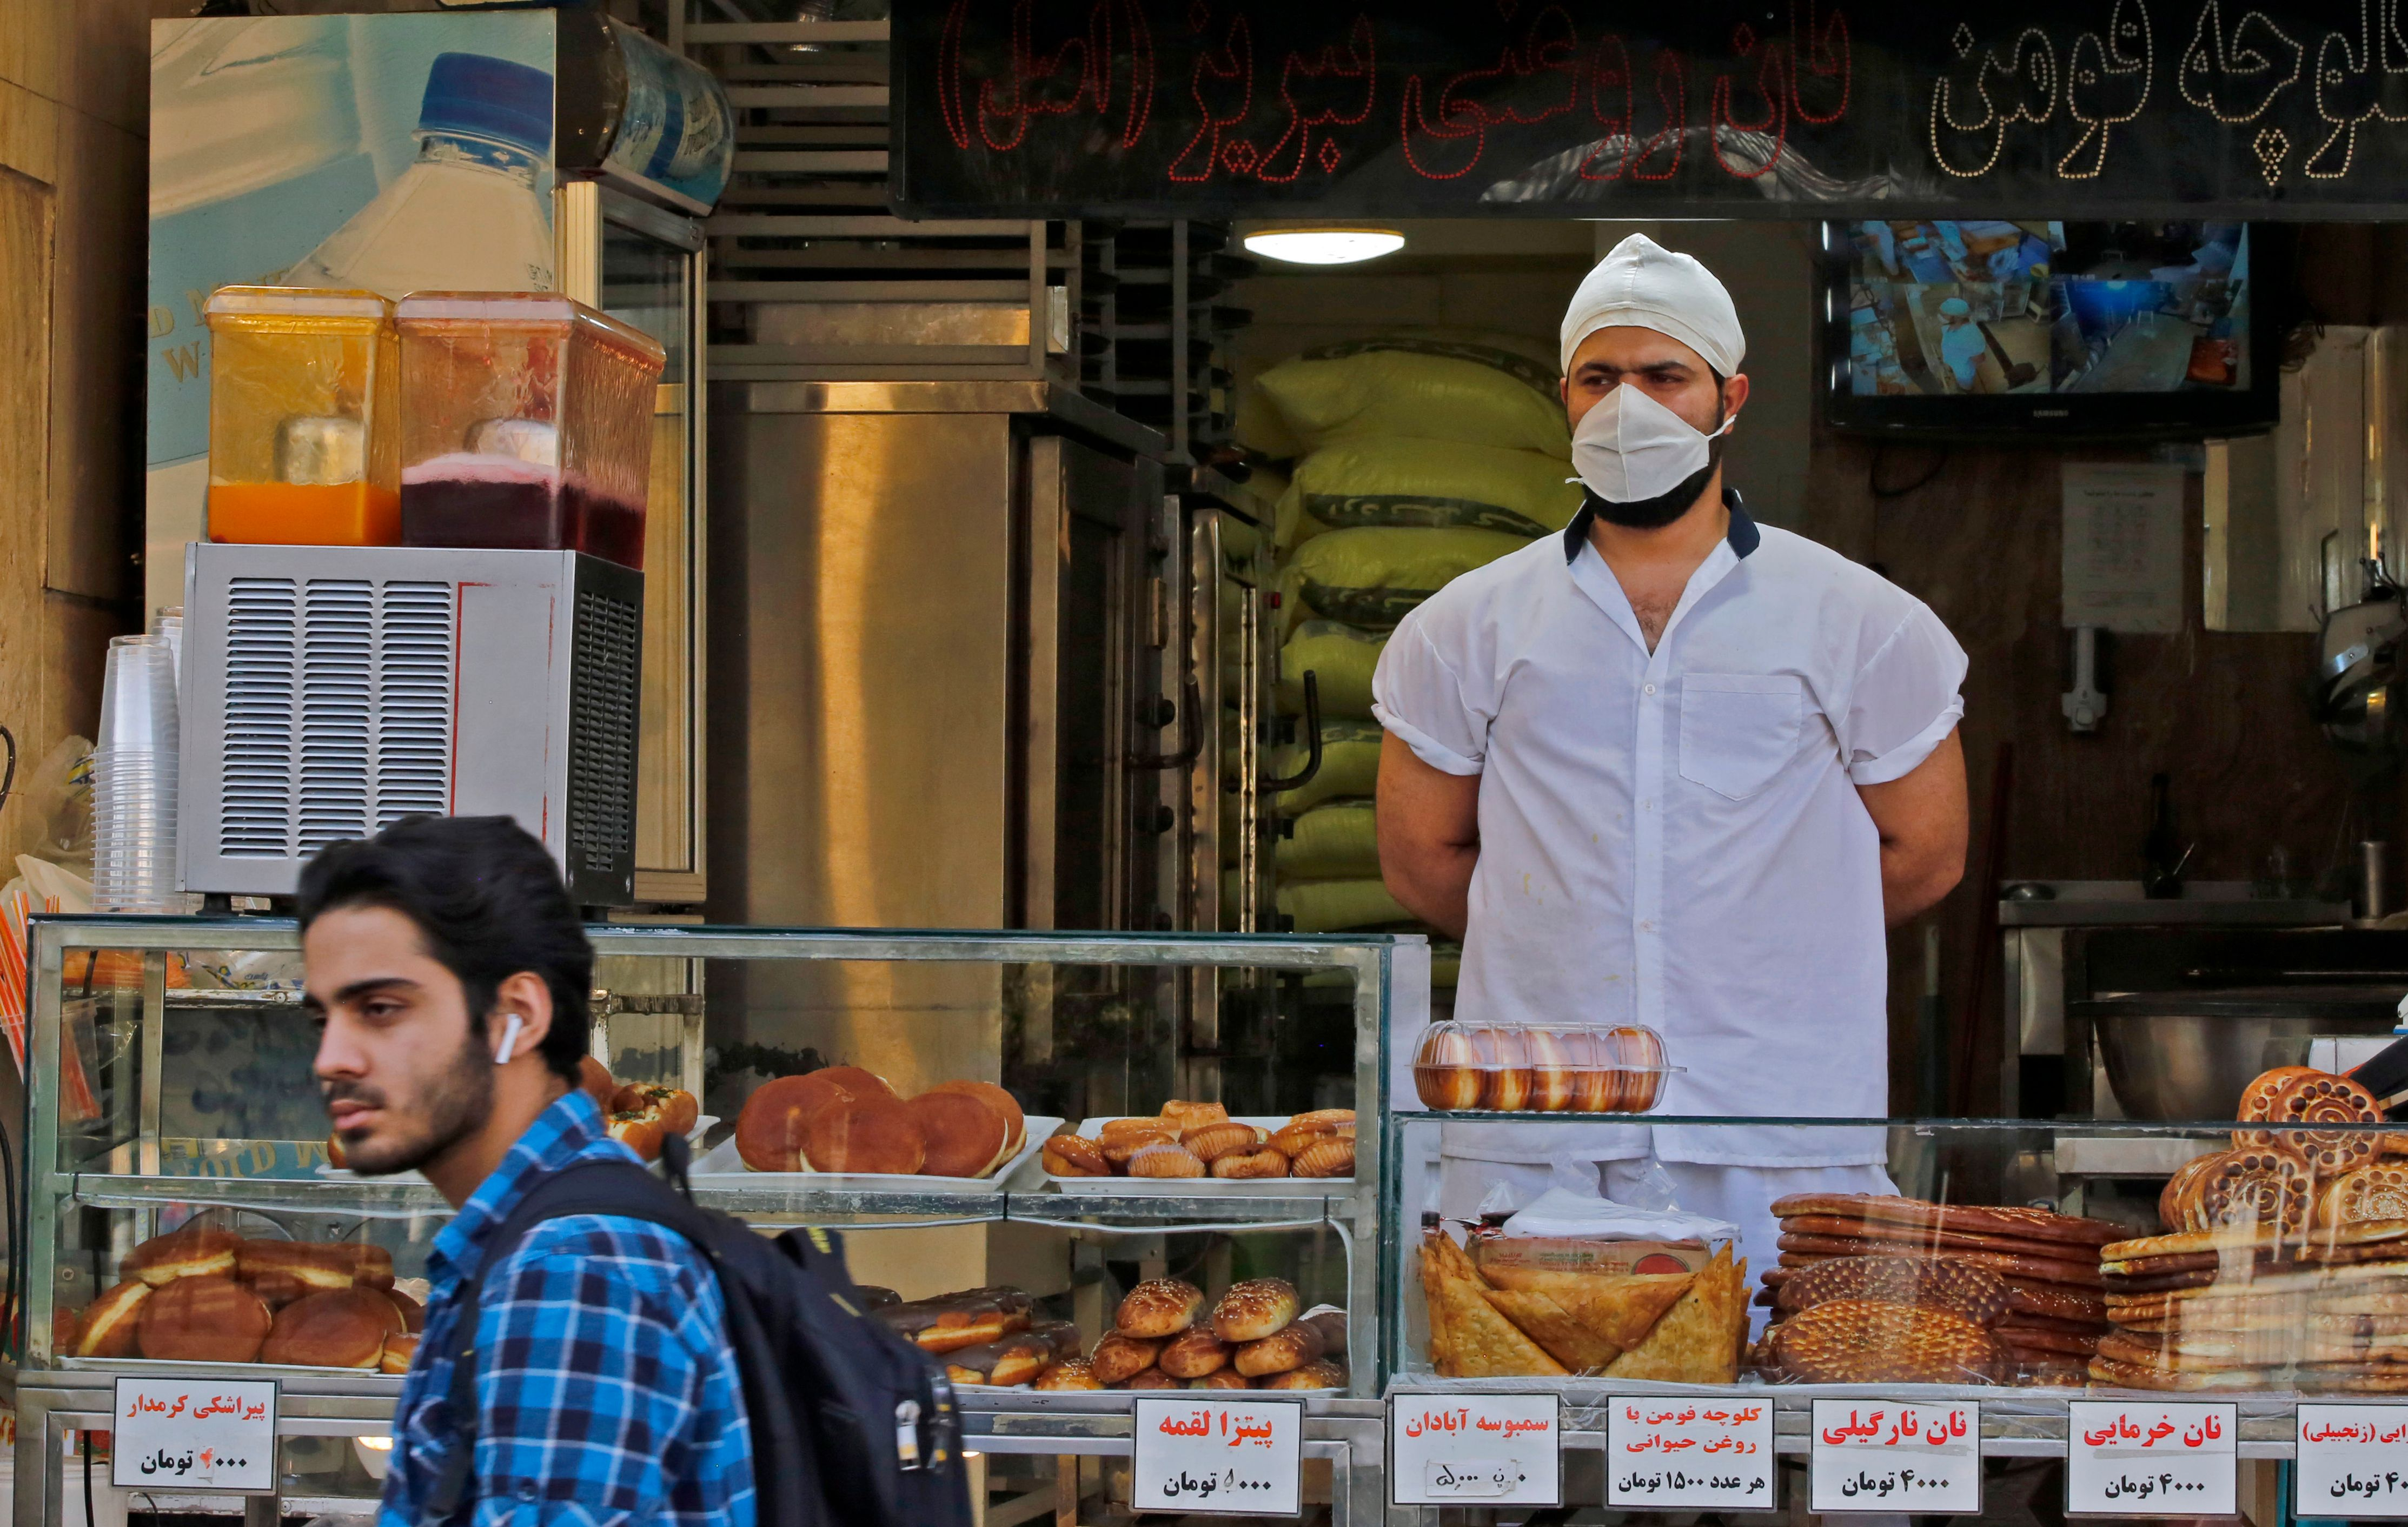 An Iranian man walks in front of a pstry shop in the capital Tehran on June 3, 2020, amid the novel coronavirus pandemic crisis. - The spread of novel coronavirus has accelerated again this month in Iran which today officially confirmed over 3,000 new cases for a third consecutive day. (Photo by - / AFP) (Photo by -/afp/AFP via Getty Images)